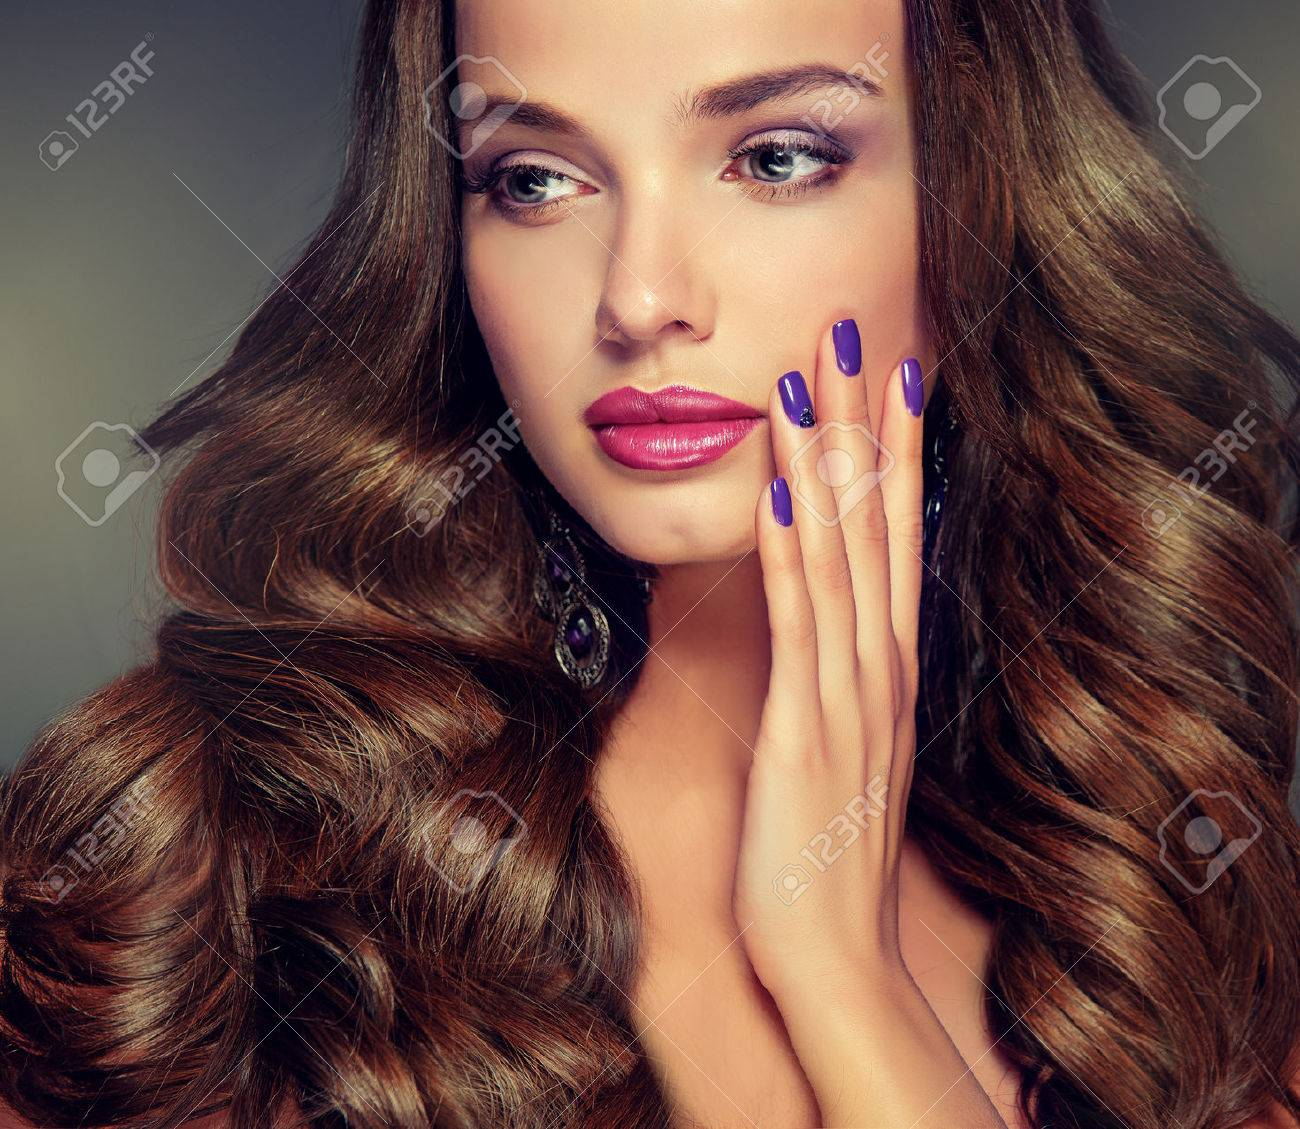 Nice young girl model with dense, curly hair. Bright fashionable make up and hairstyles. - 48840974